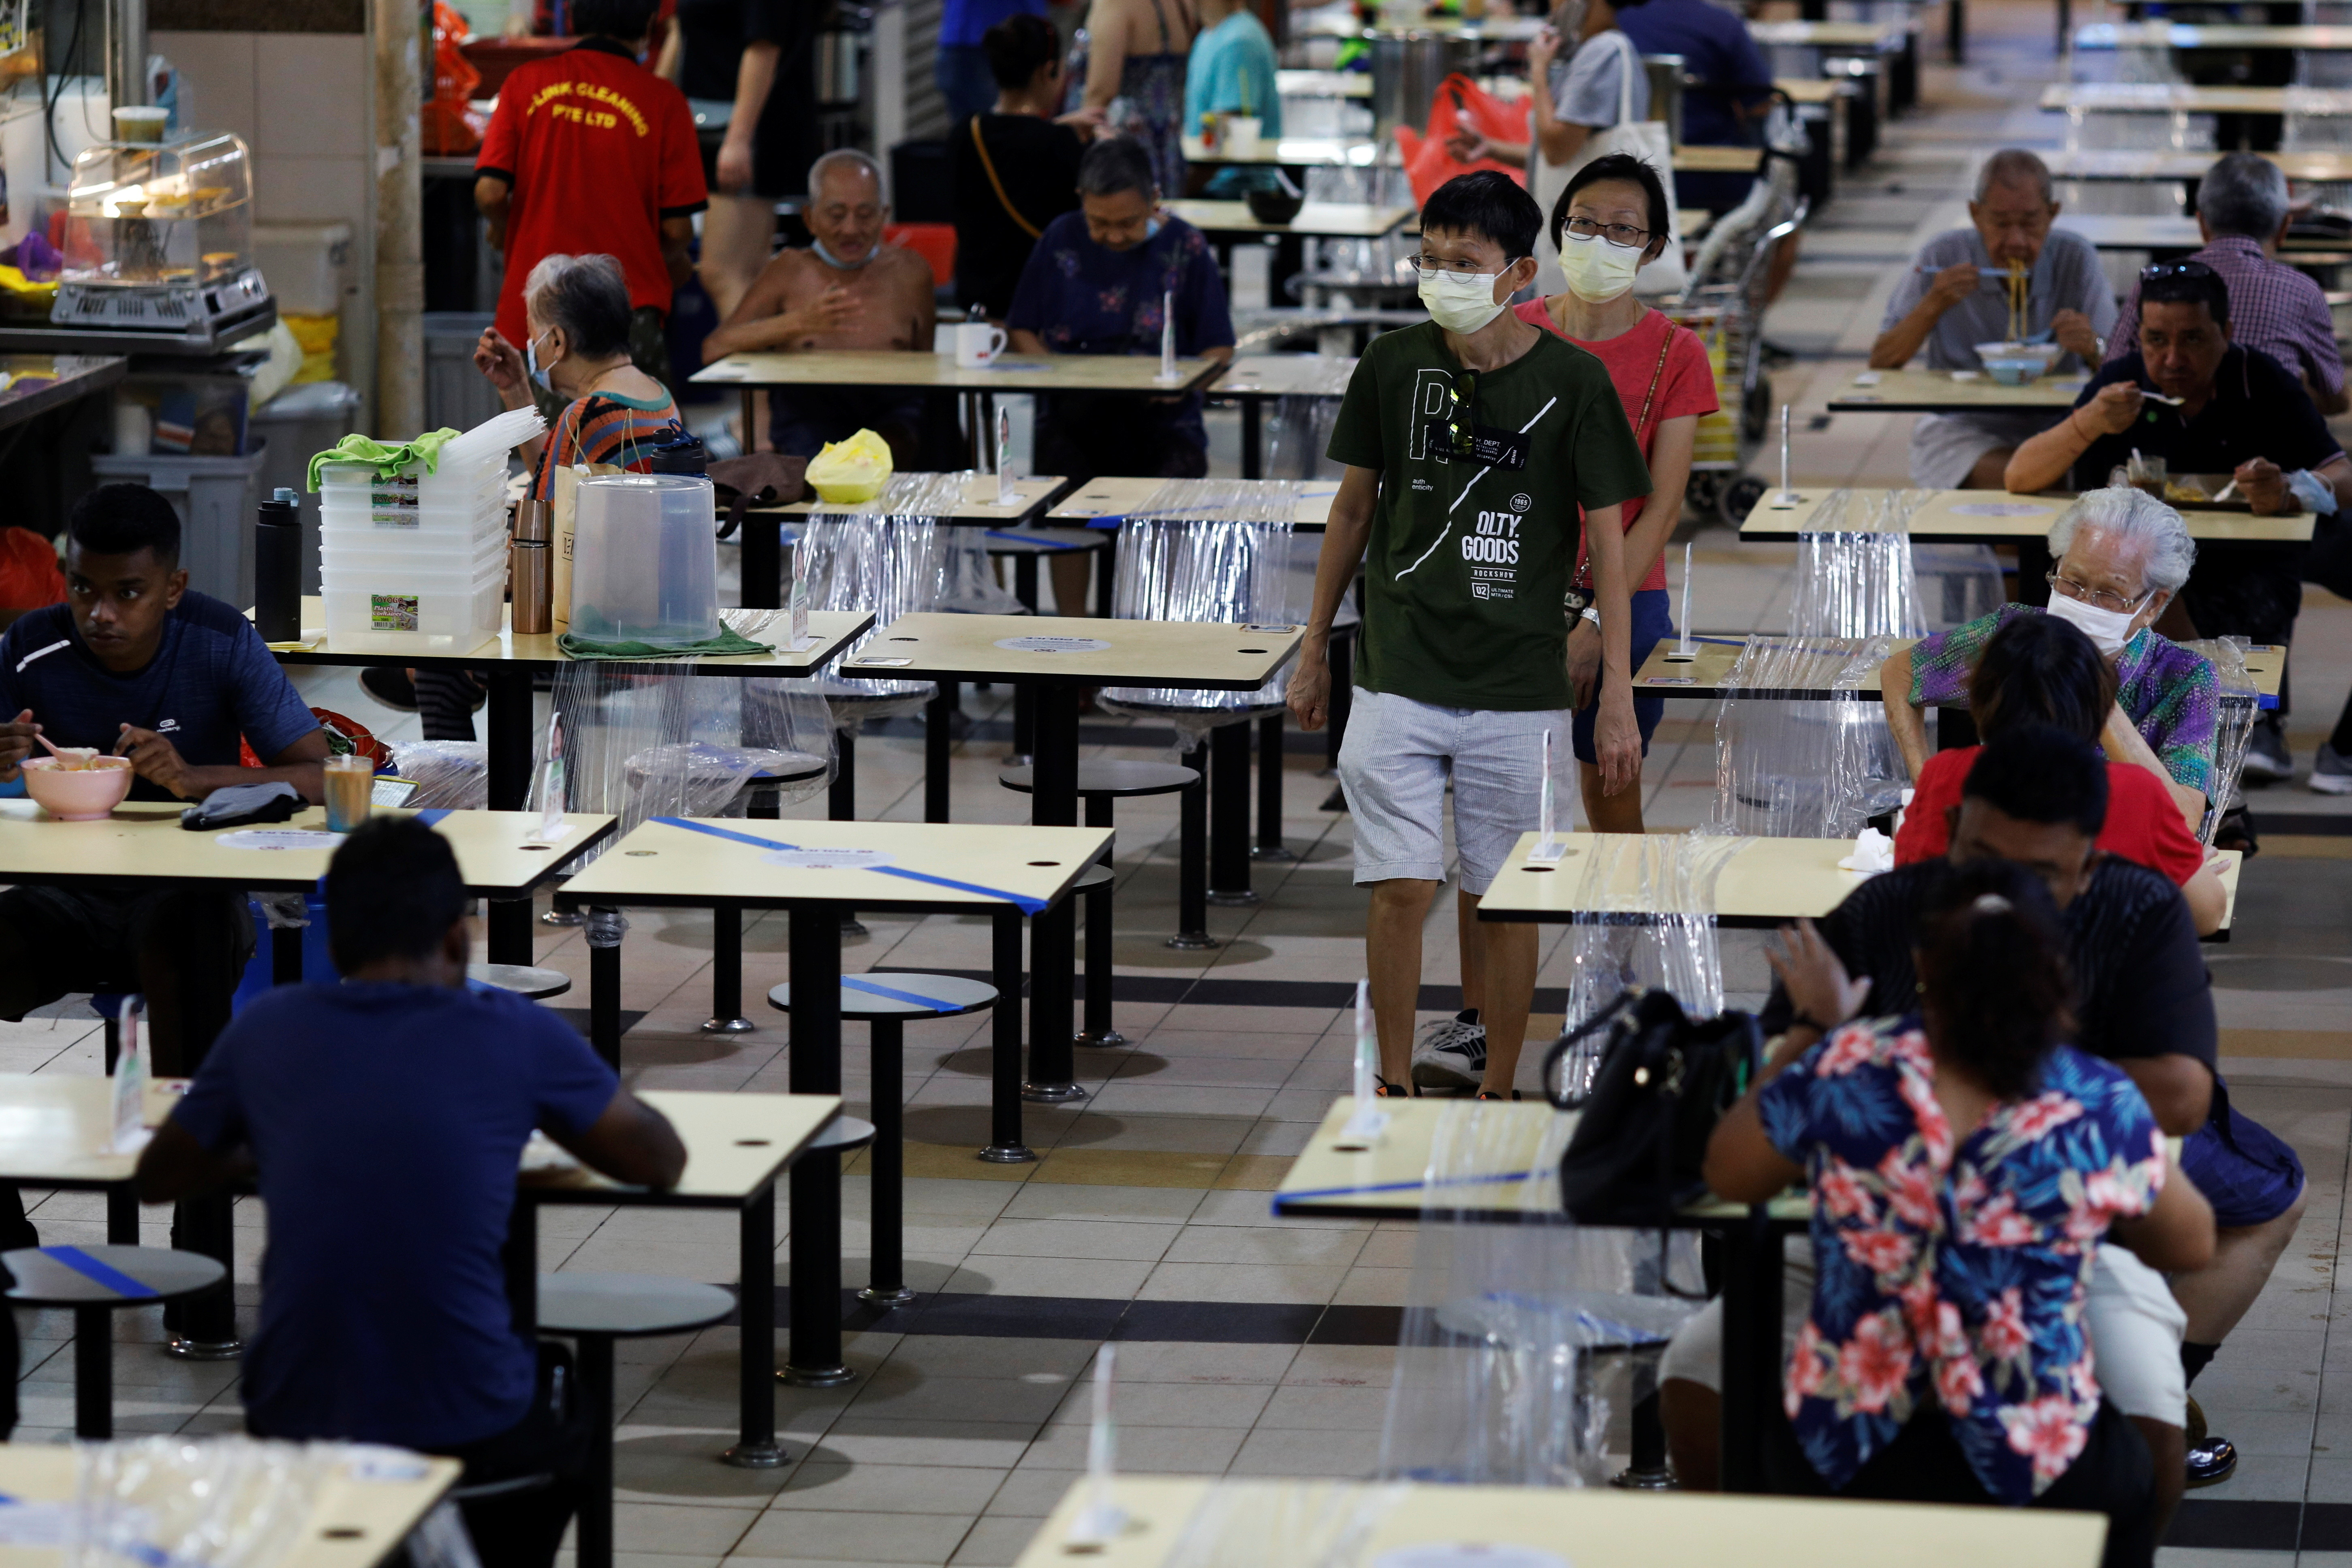 People eat at a hawker centre during the coronavirus disease (COVID-19) outbreak, in Singapore September 21, 2021. REUTERS/Edgar Su - RC21UP92C6UK